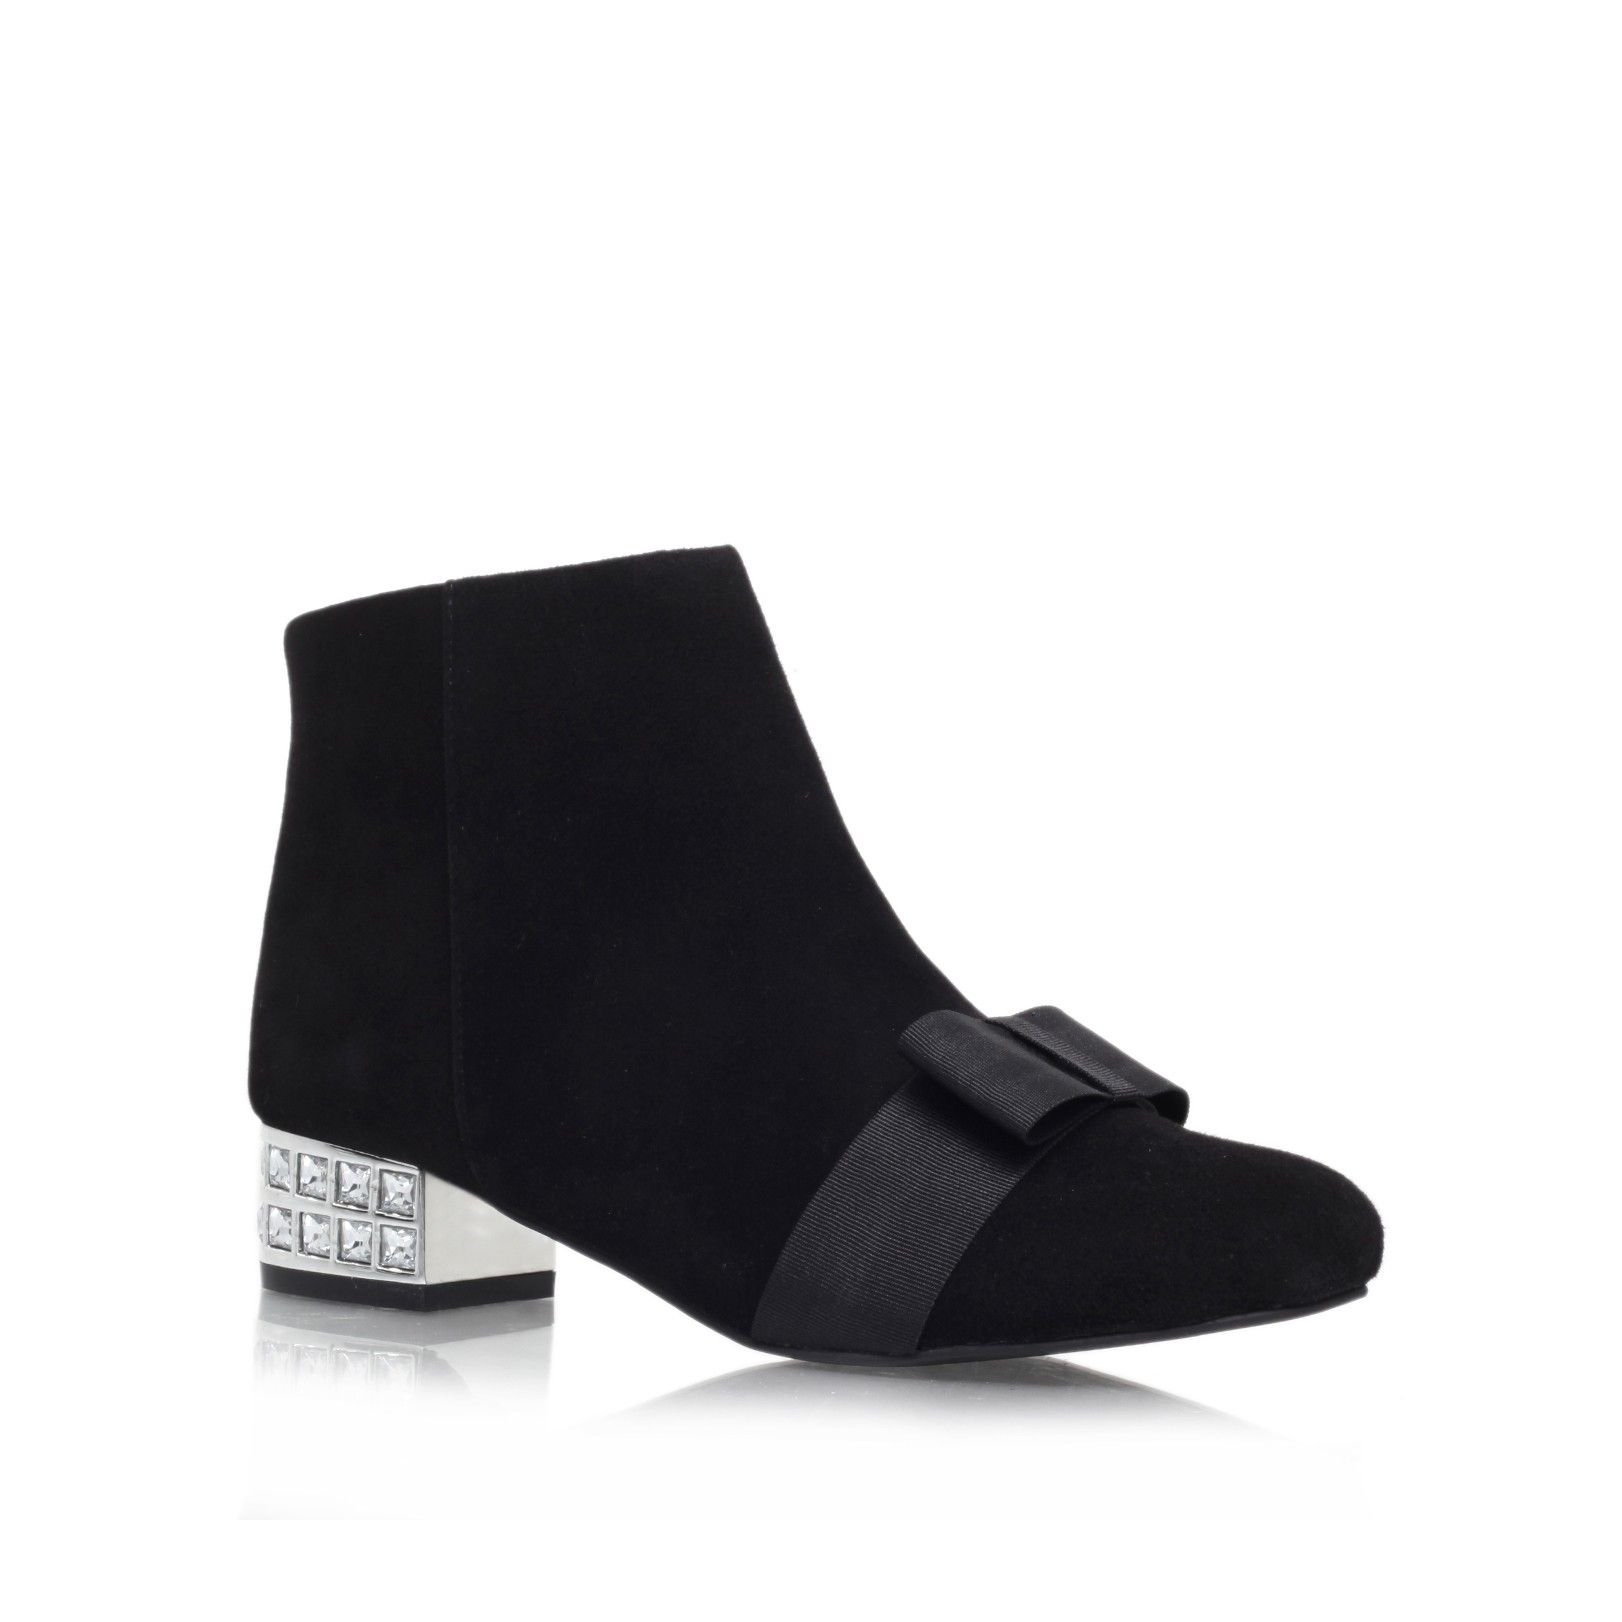 solo black low heel ankle boots from KG Kurt Geiger   Fashion ...